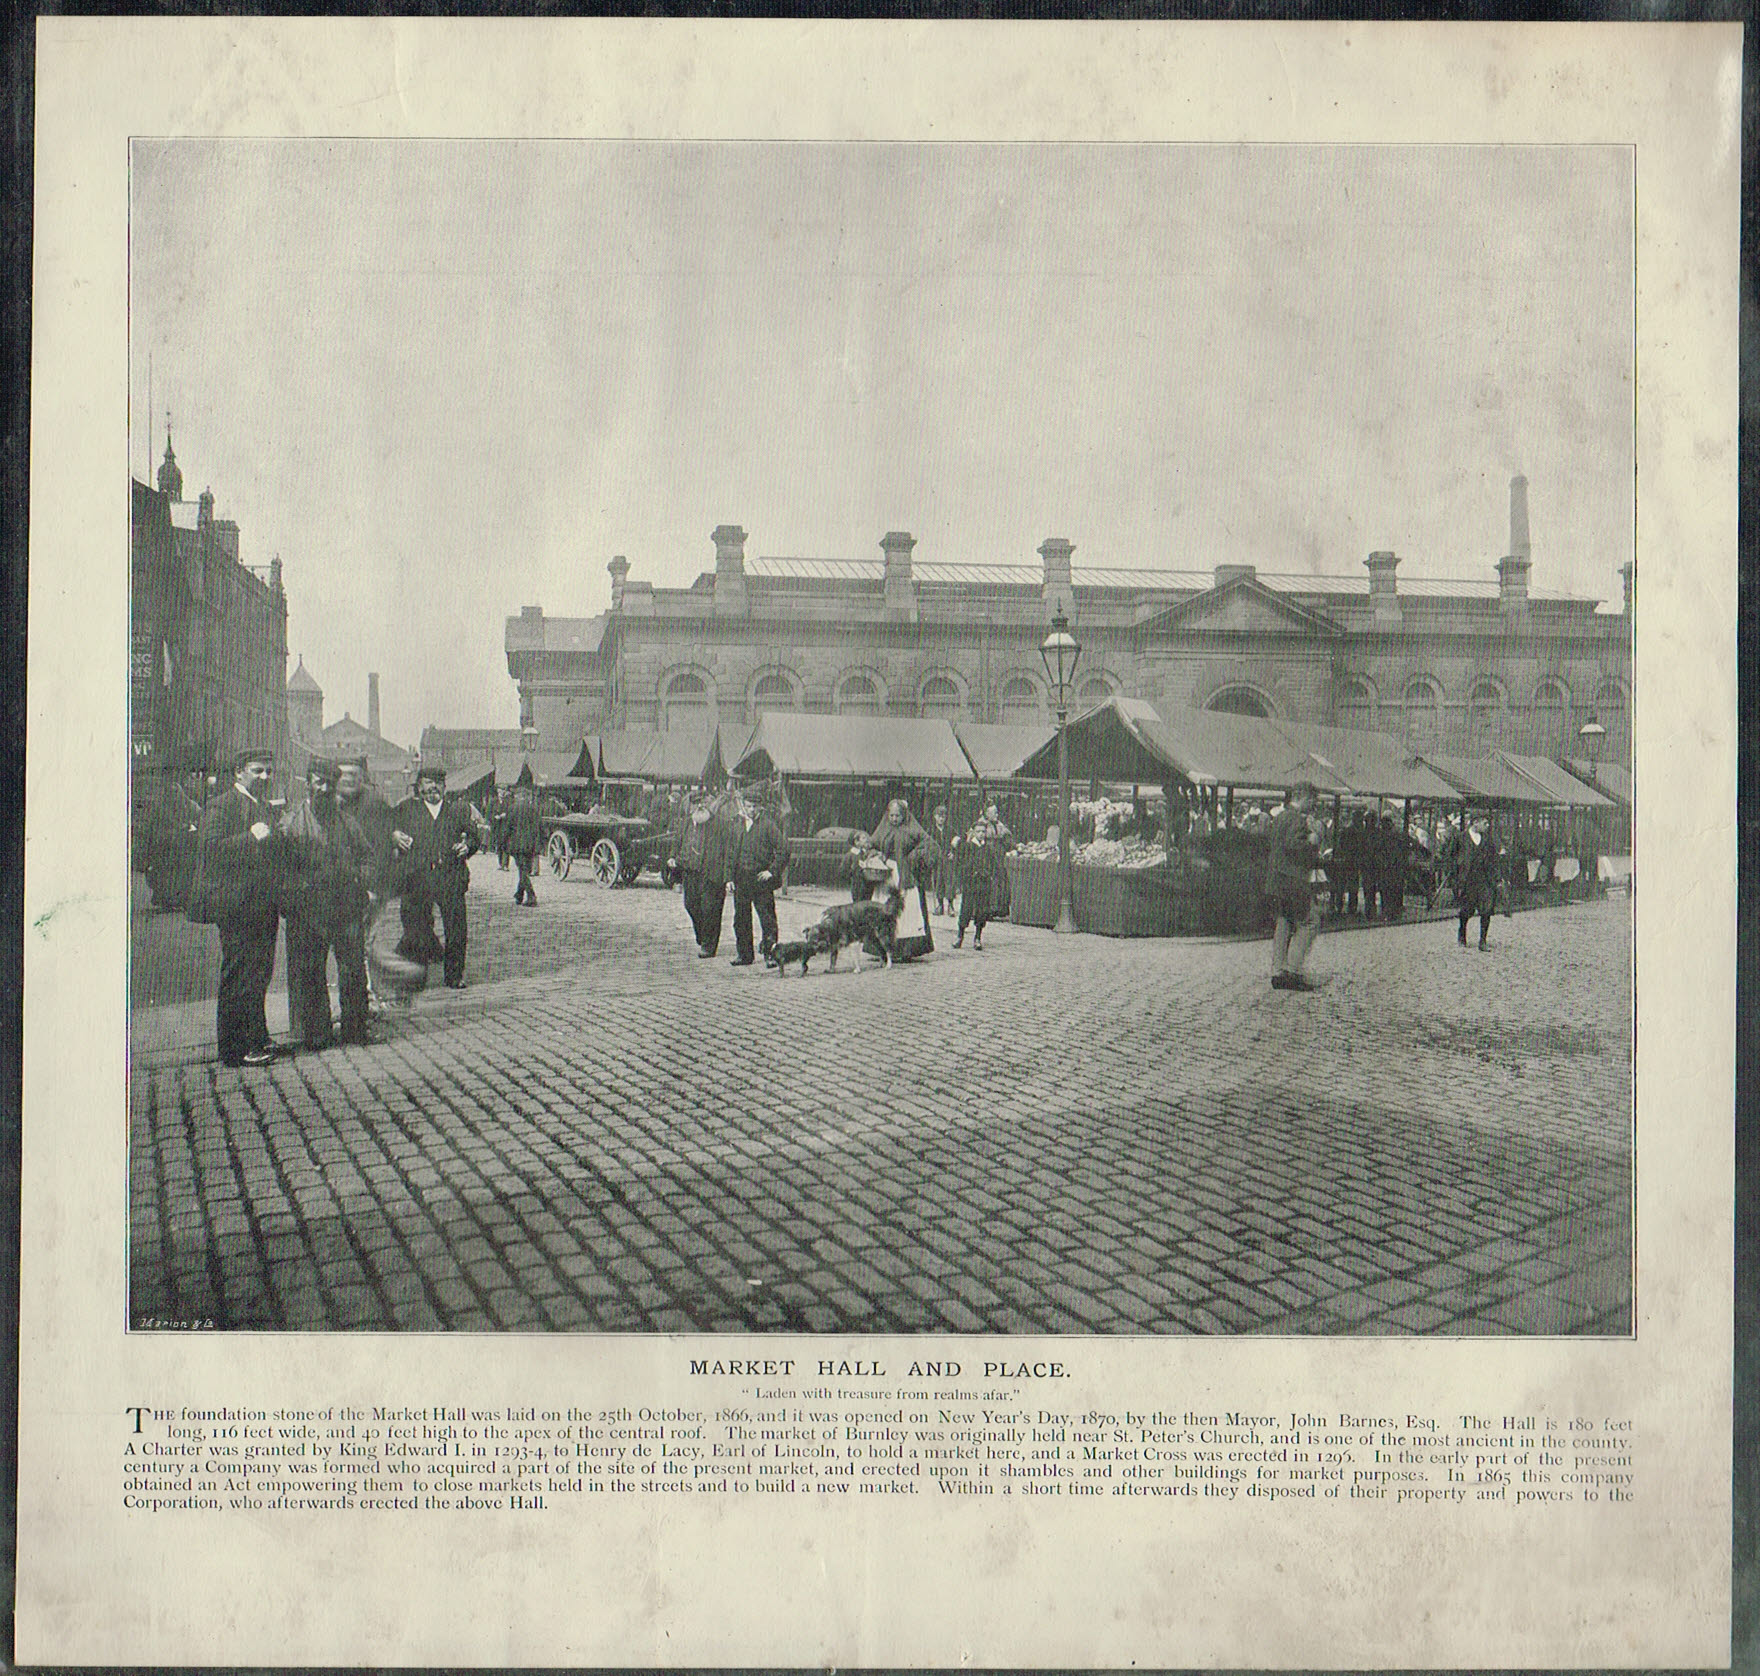 Vintage BURNLEY Banks 1854 1876 1894 newspaper print photos MARKET HALL PLACE  refS4 Great social and commercial history of Burnley.  Measures approx 28cm x 29cm  1 page (2 pictures - front and reverse). May be cuttings from full size newspapers. No dates. Please read the full description and see photo.